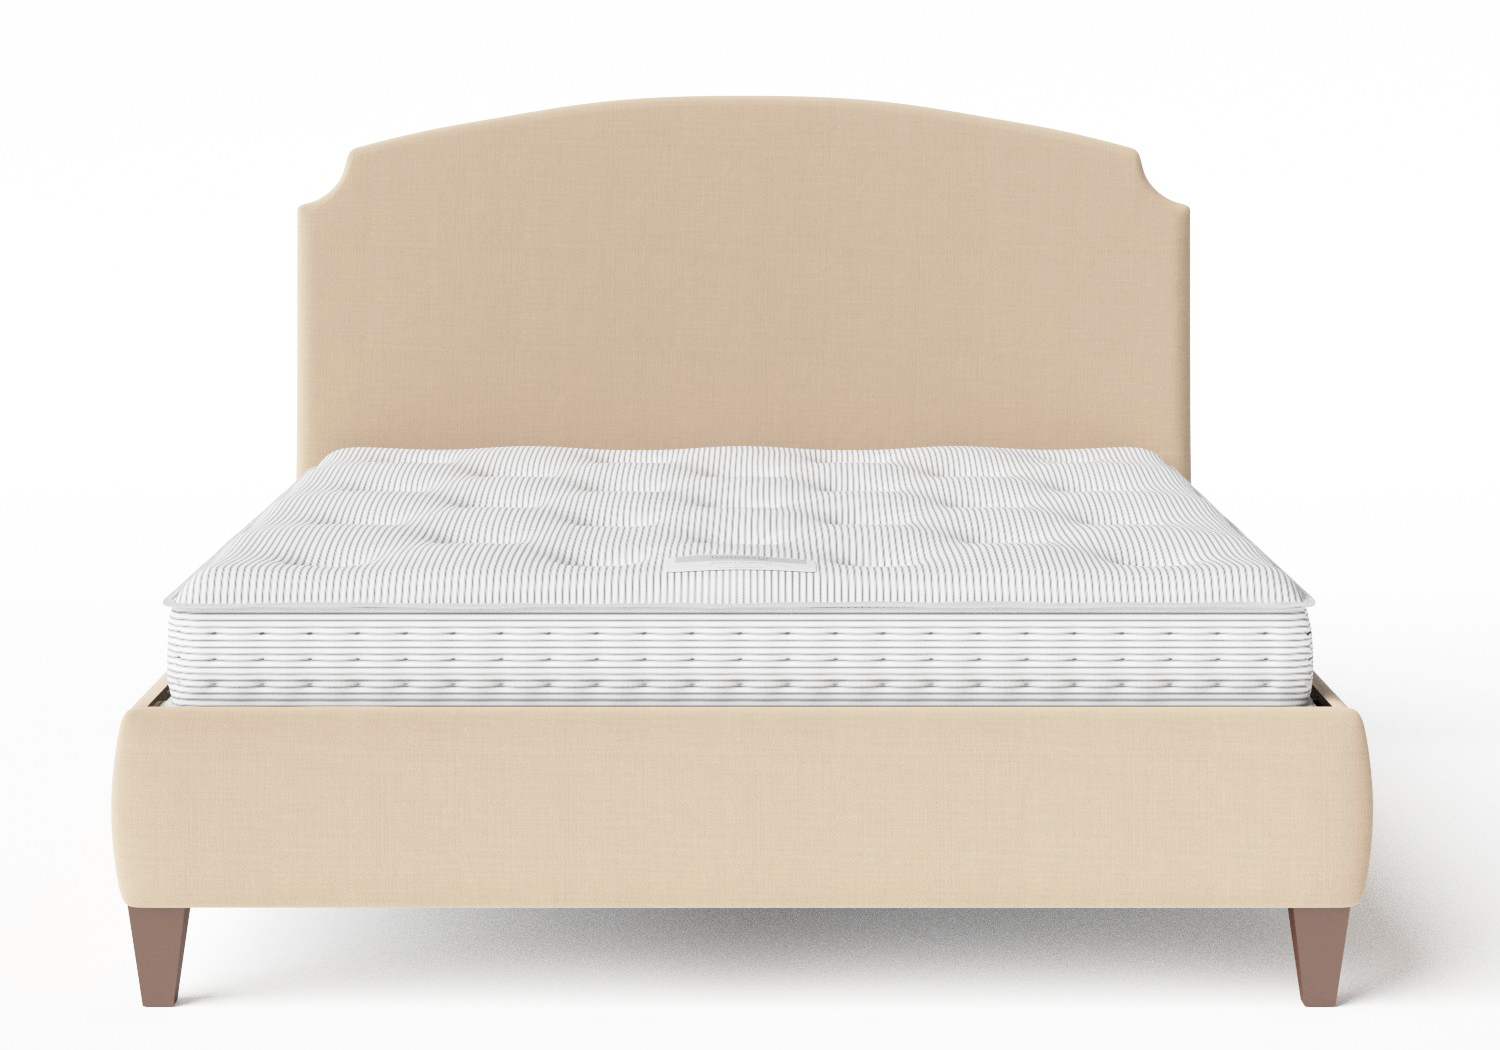 Lide Upholstered Bed in Natural fabric shown with Juno 1 mattress